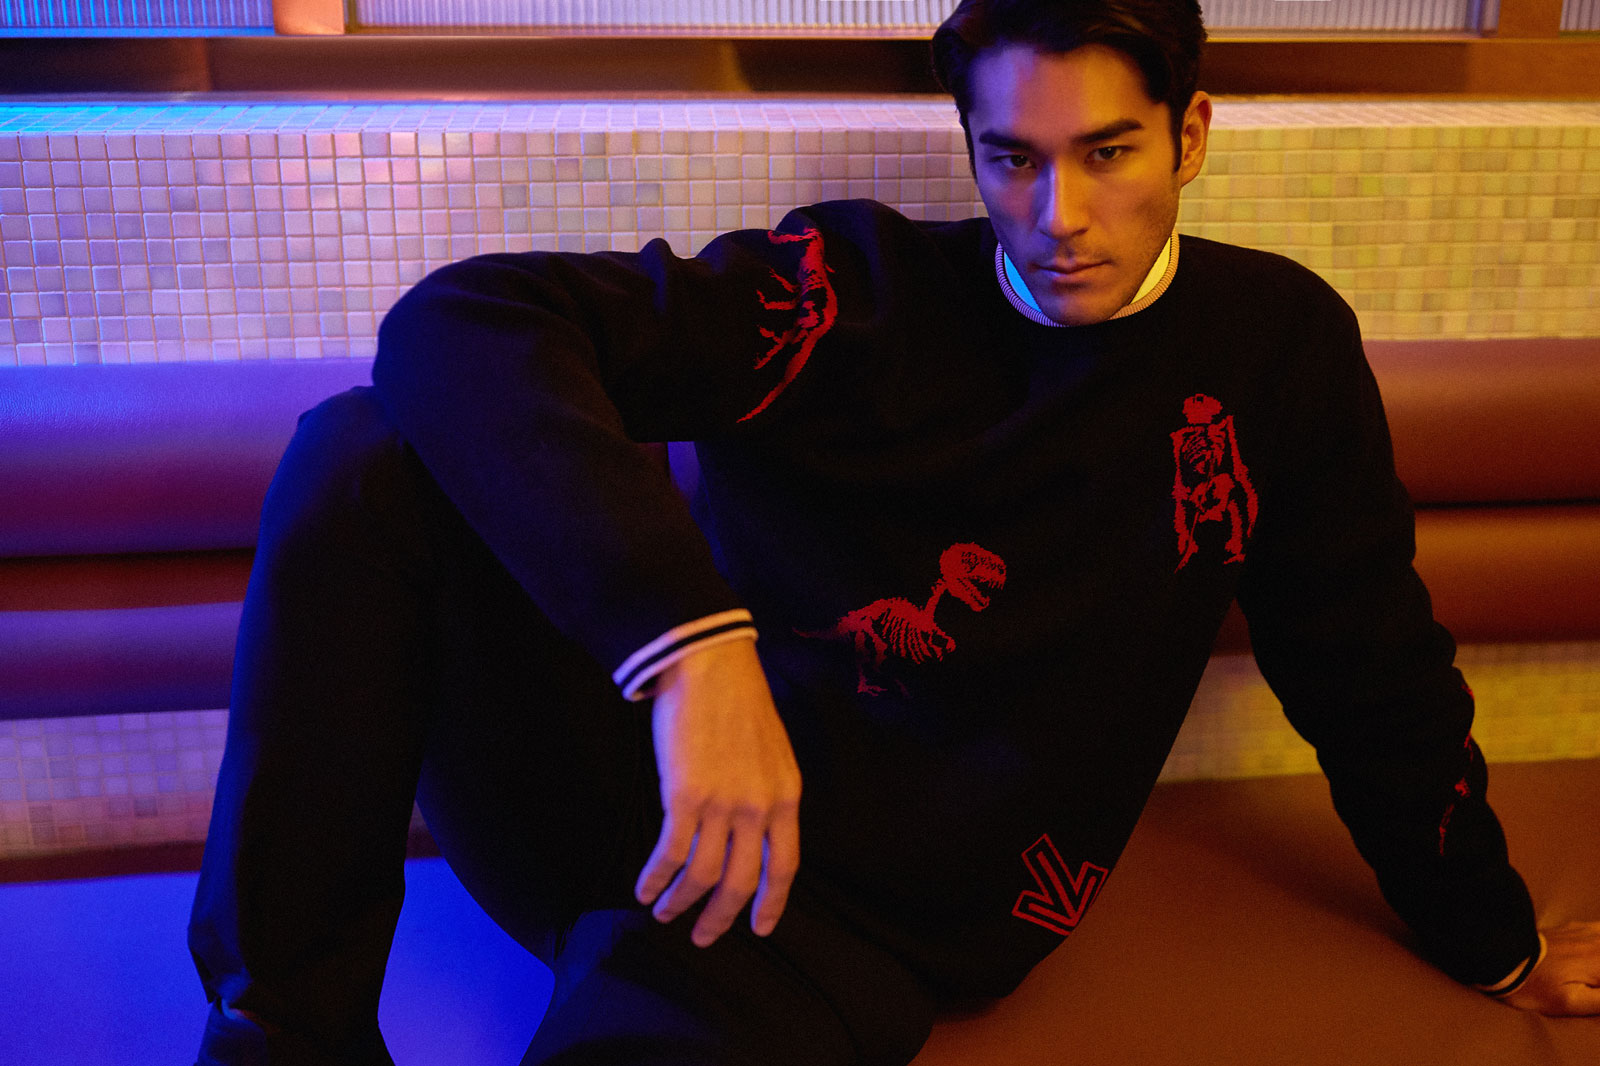 A model lounges on the seats of a diner wearing a dinosaur motif Lanvin sweater